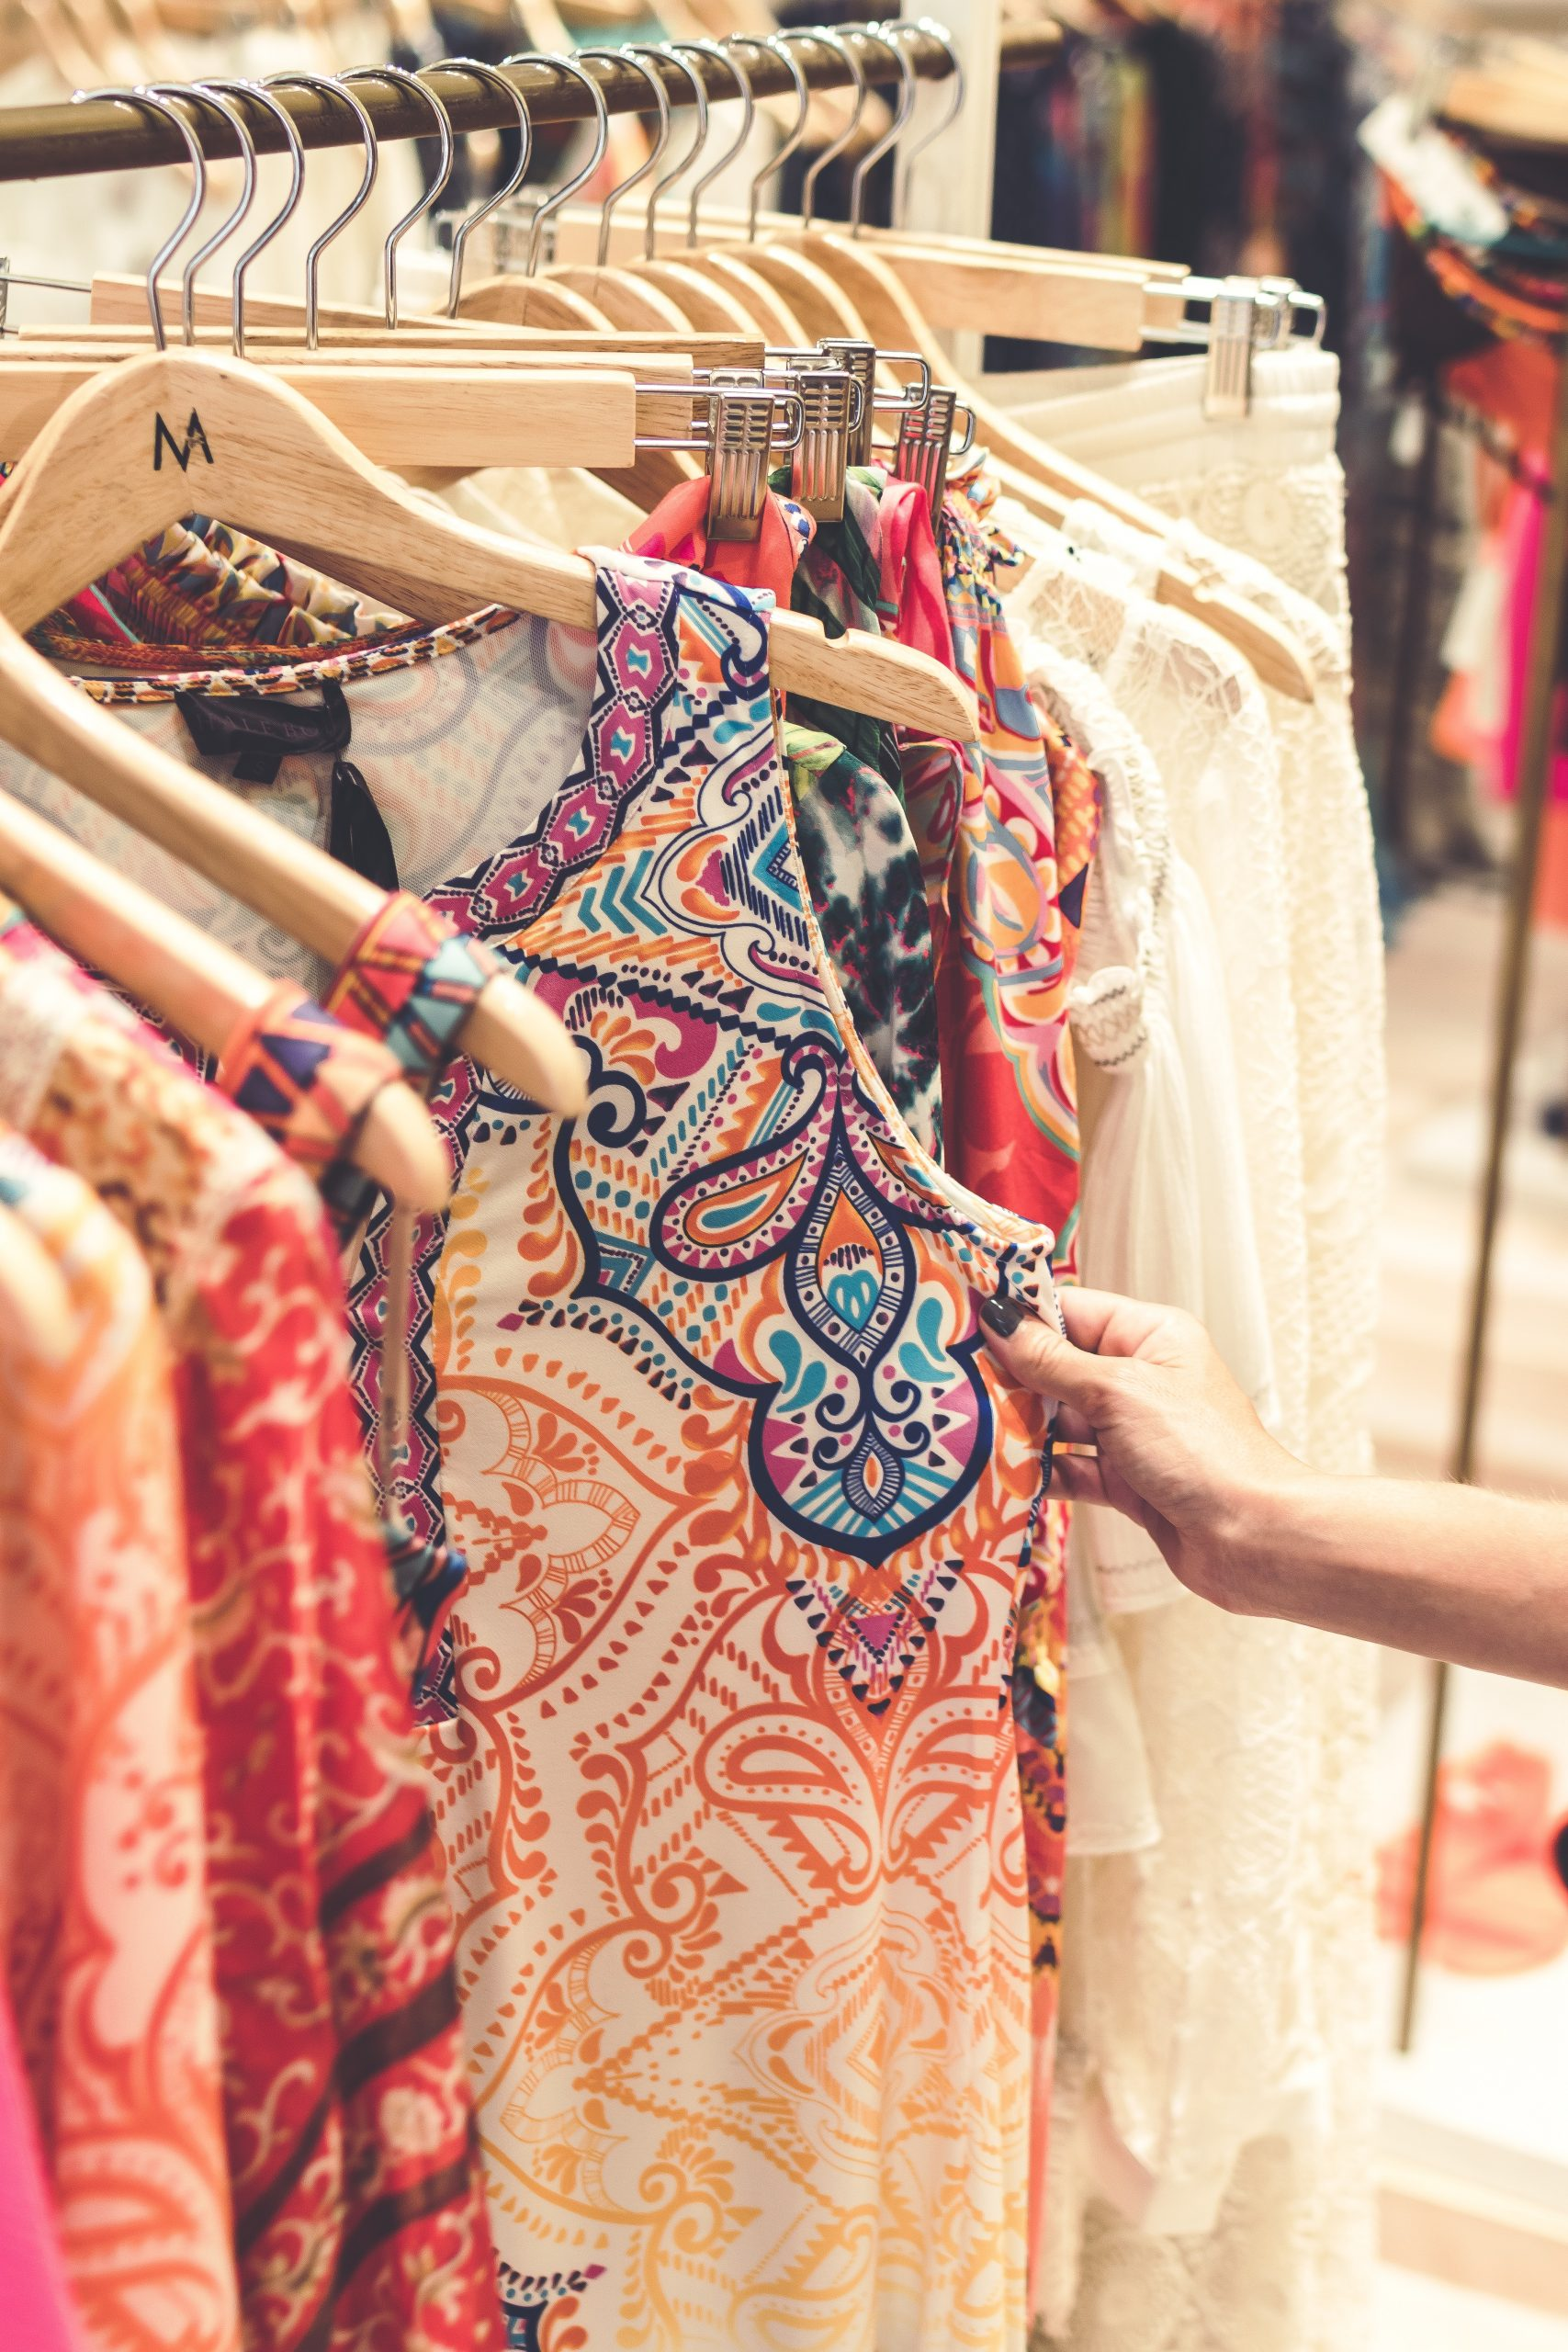 Insight-driven transformation of a clothing retailer